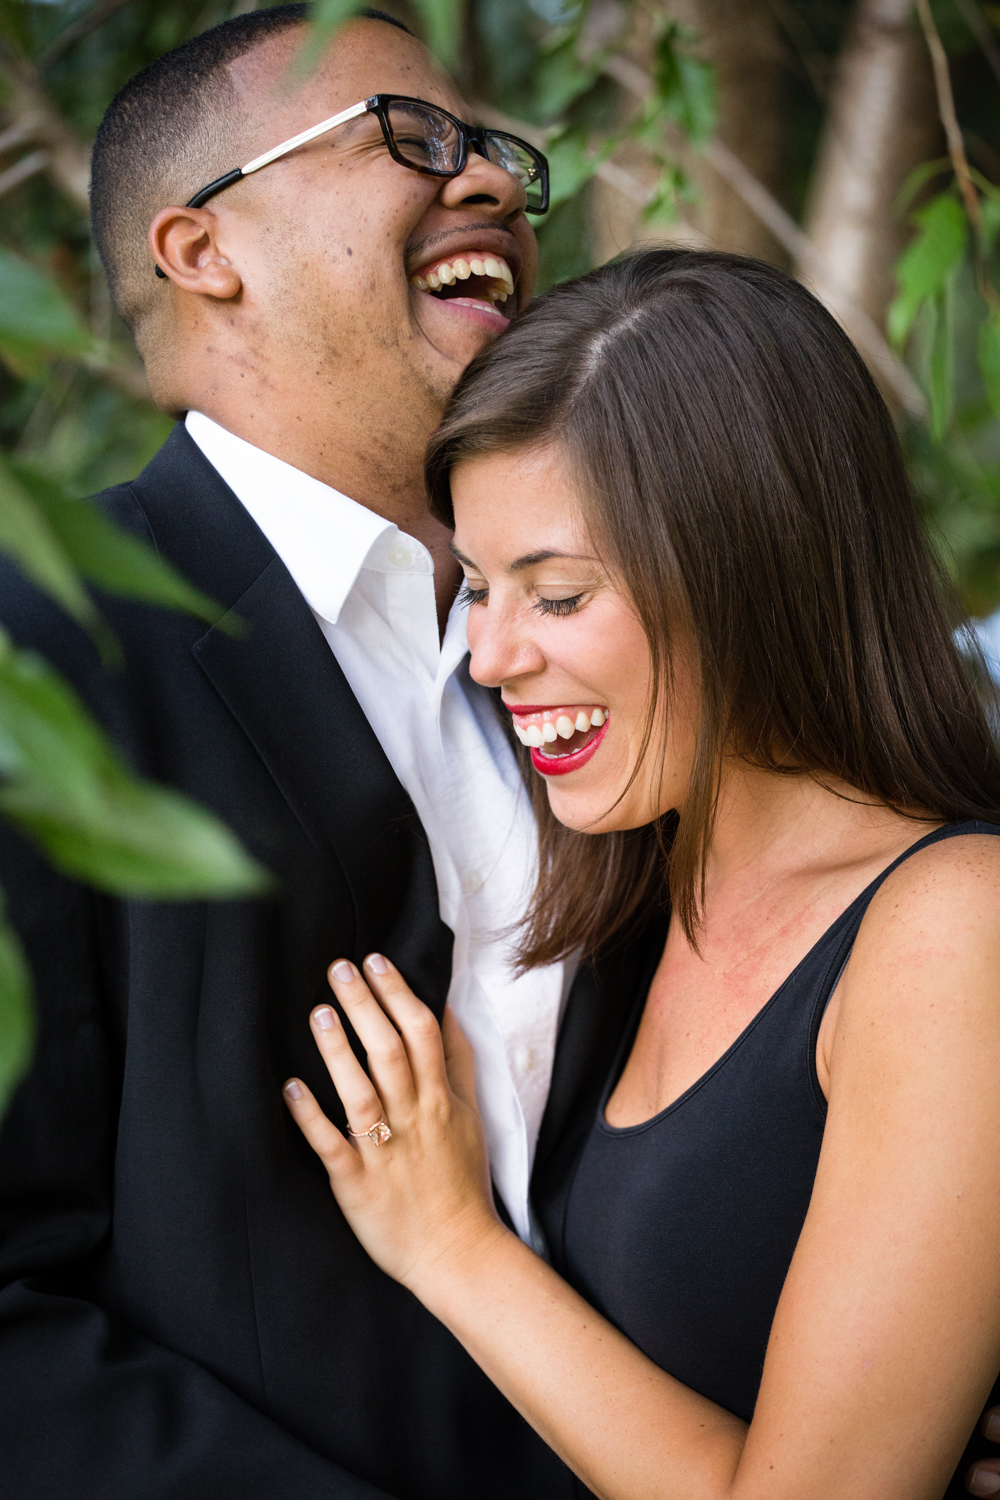 Photo of a laughing interracial couple dressed up under the trees